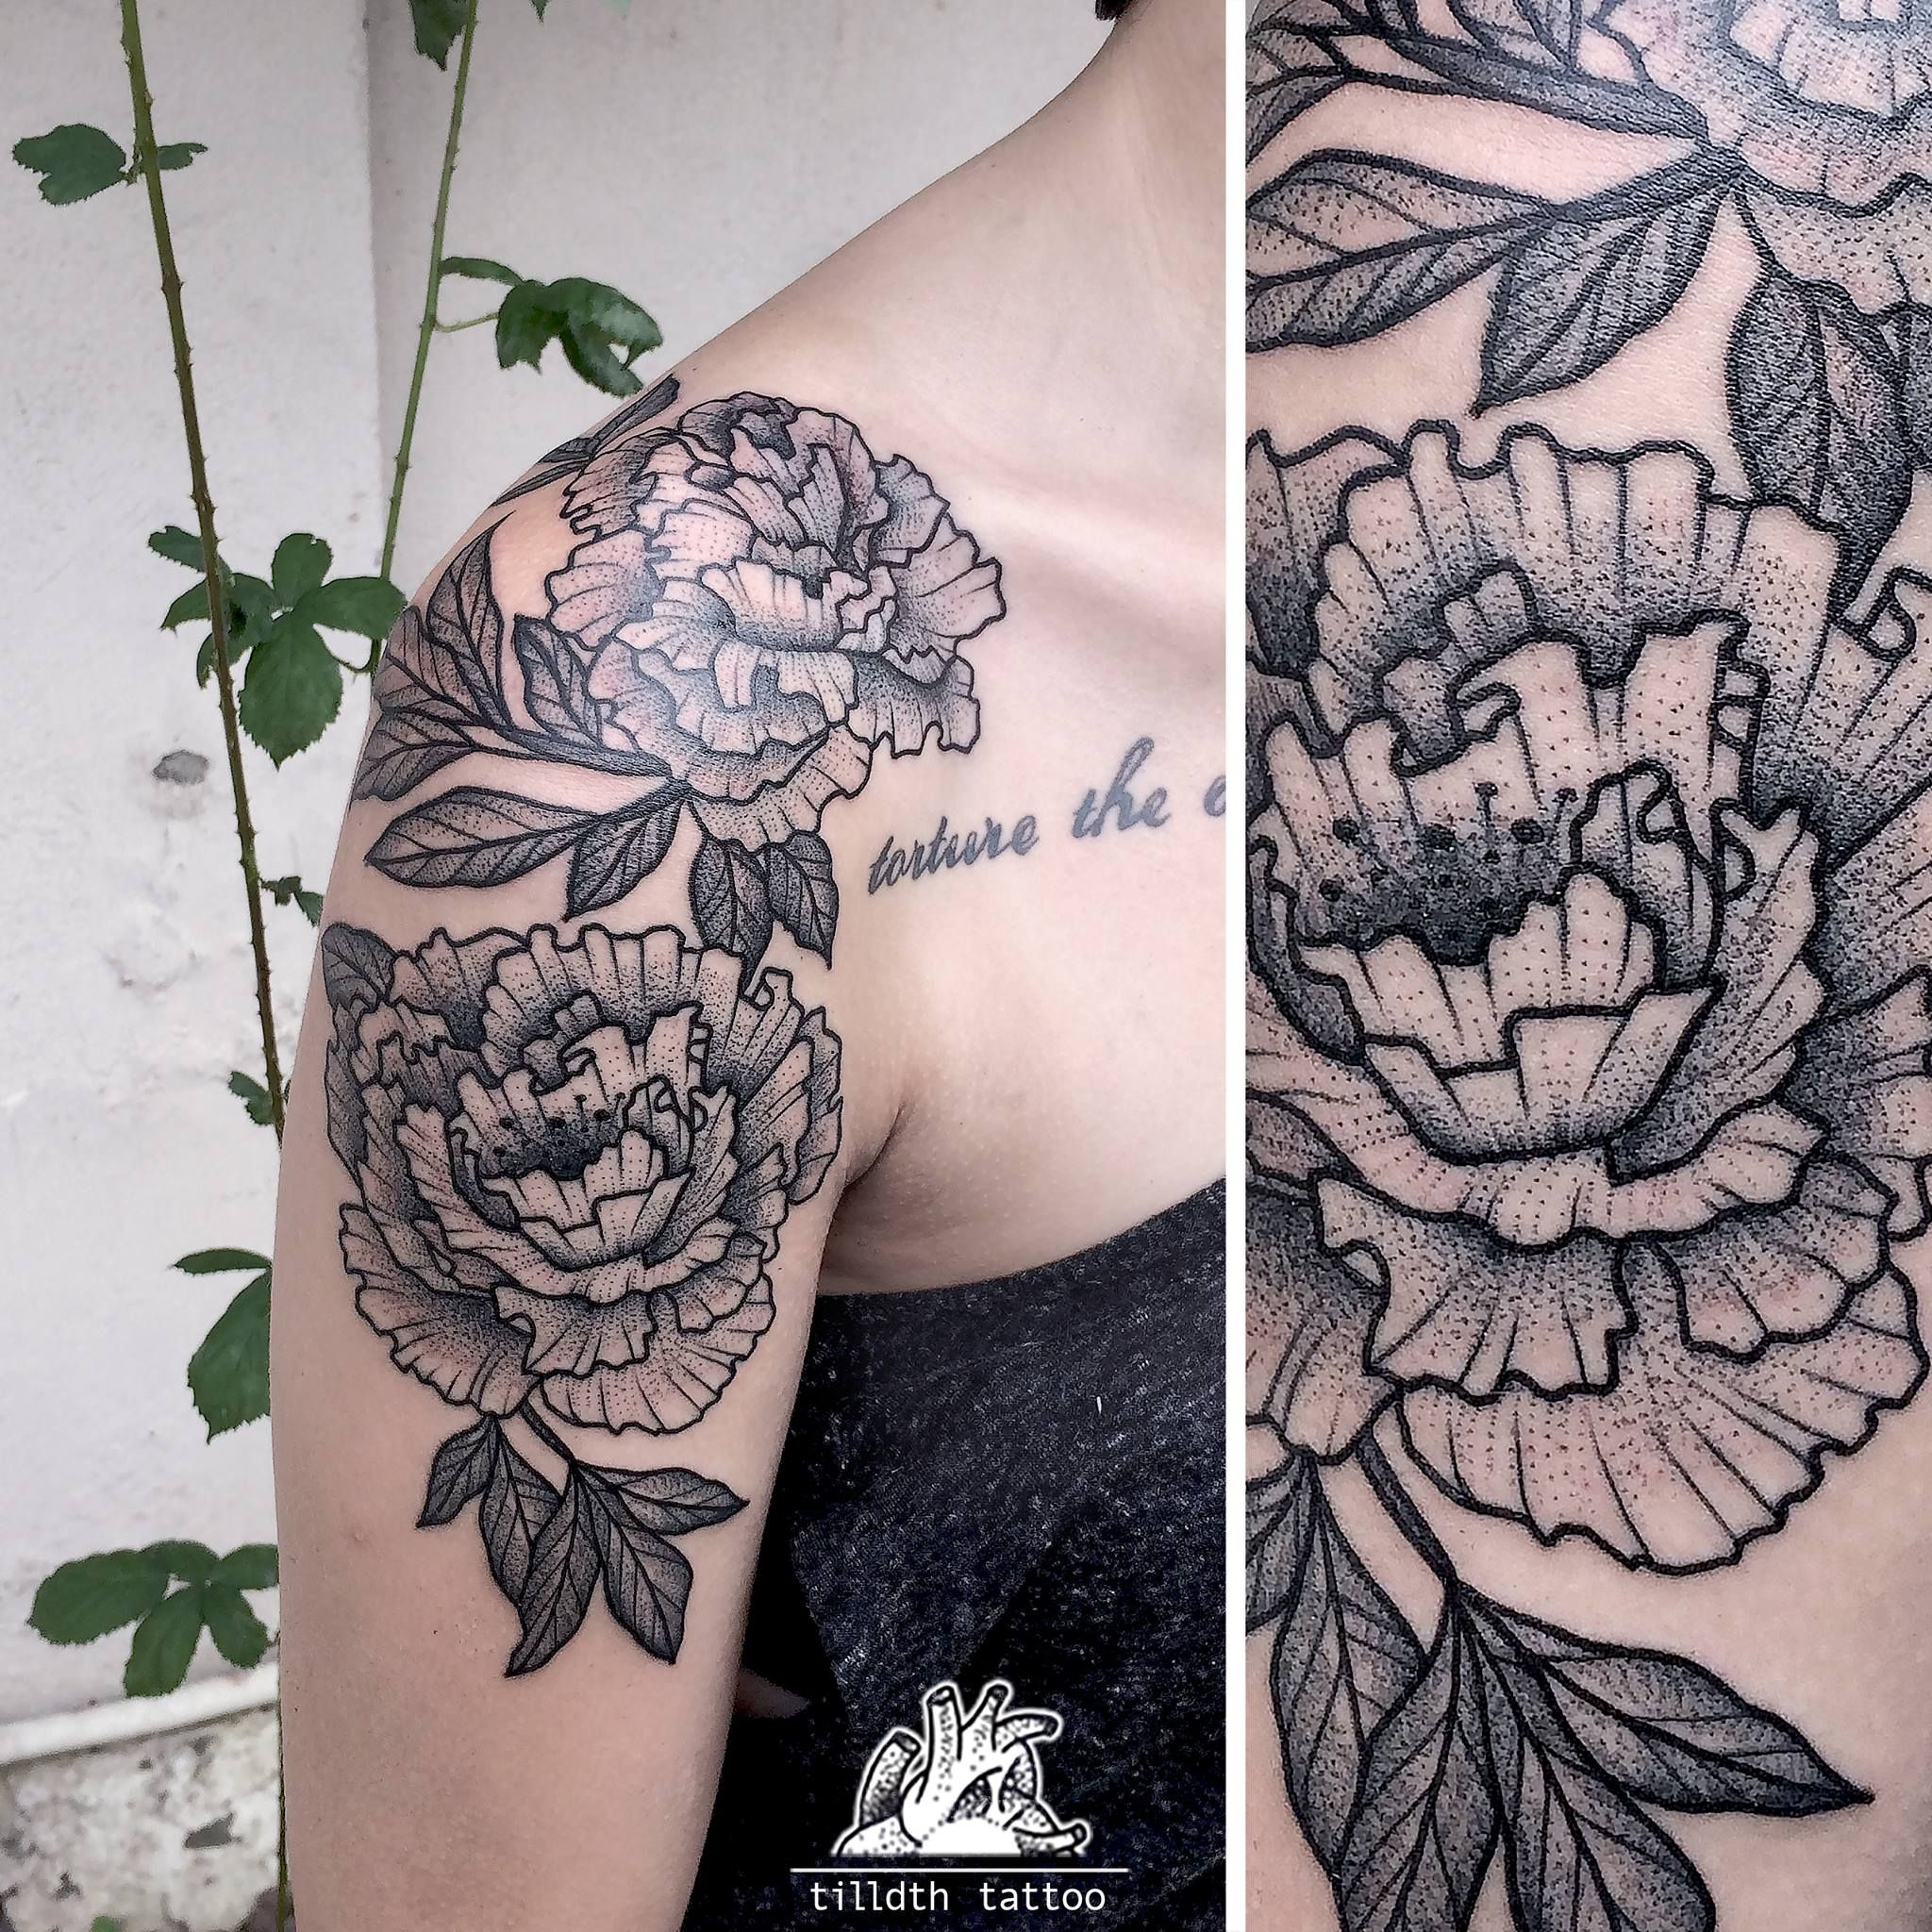 Beautiful Botanical Tattoos By Salem Witch Descendant: Done By Tilldth (With Images)